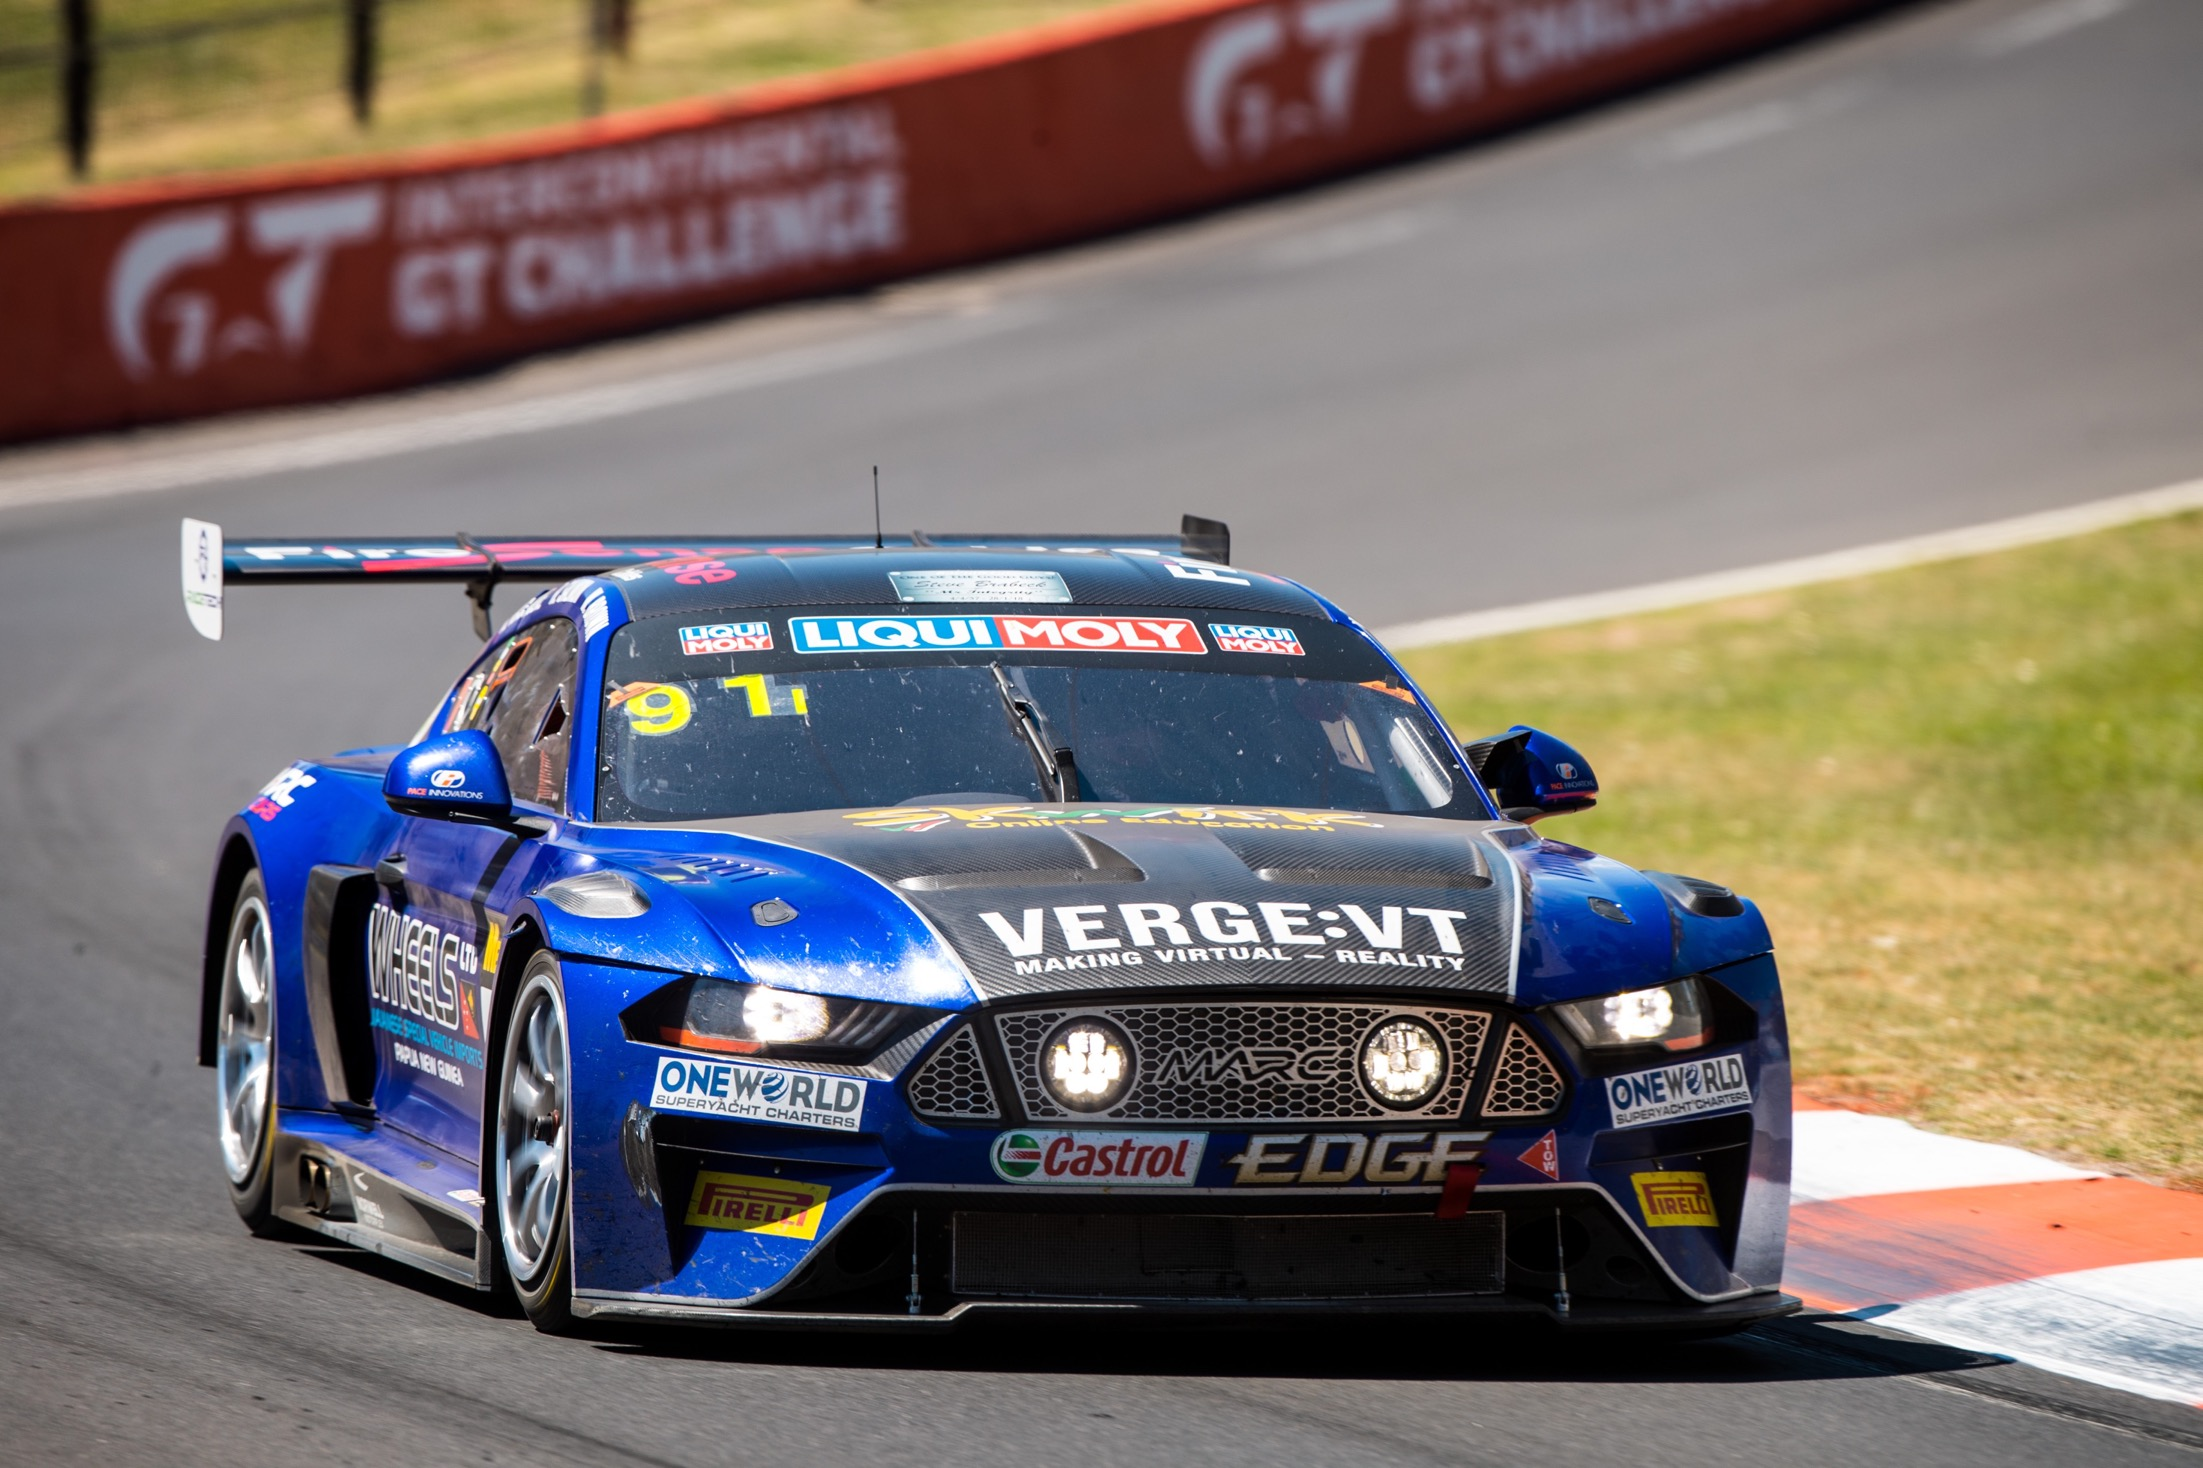 Will Brown is seen in the MARC II Mustang during the 2018 Luiqi Molly Bathurst 12 Hr